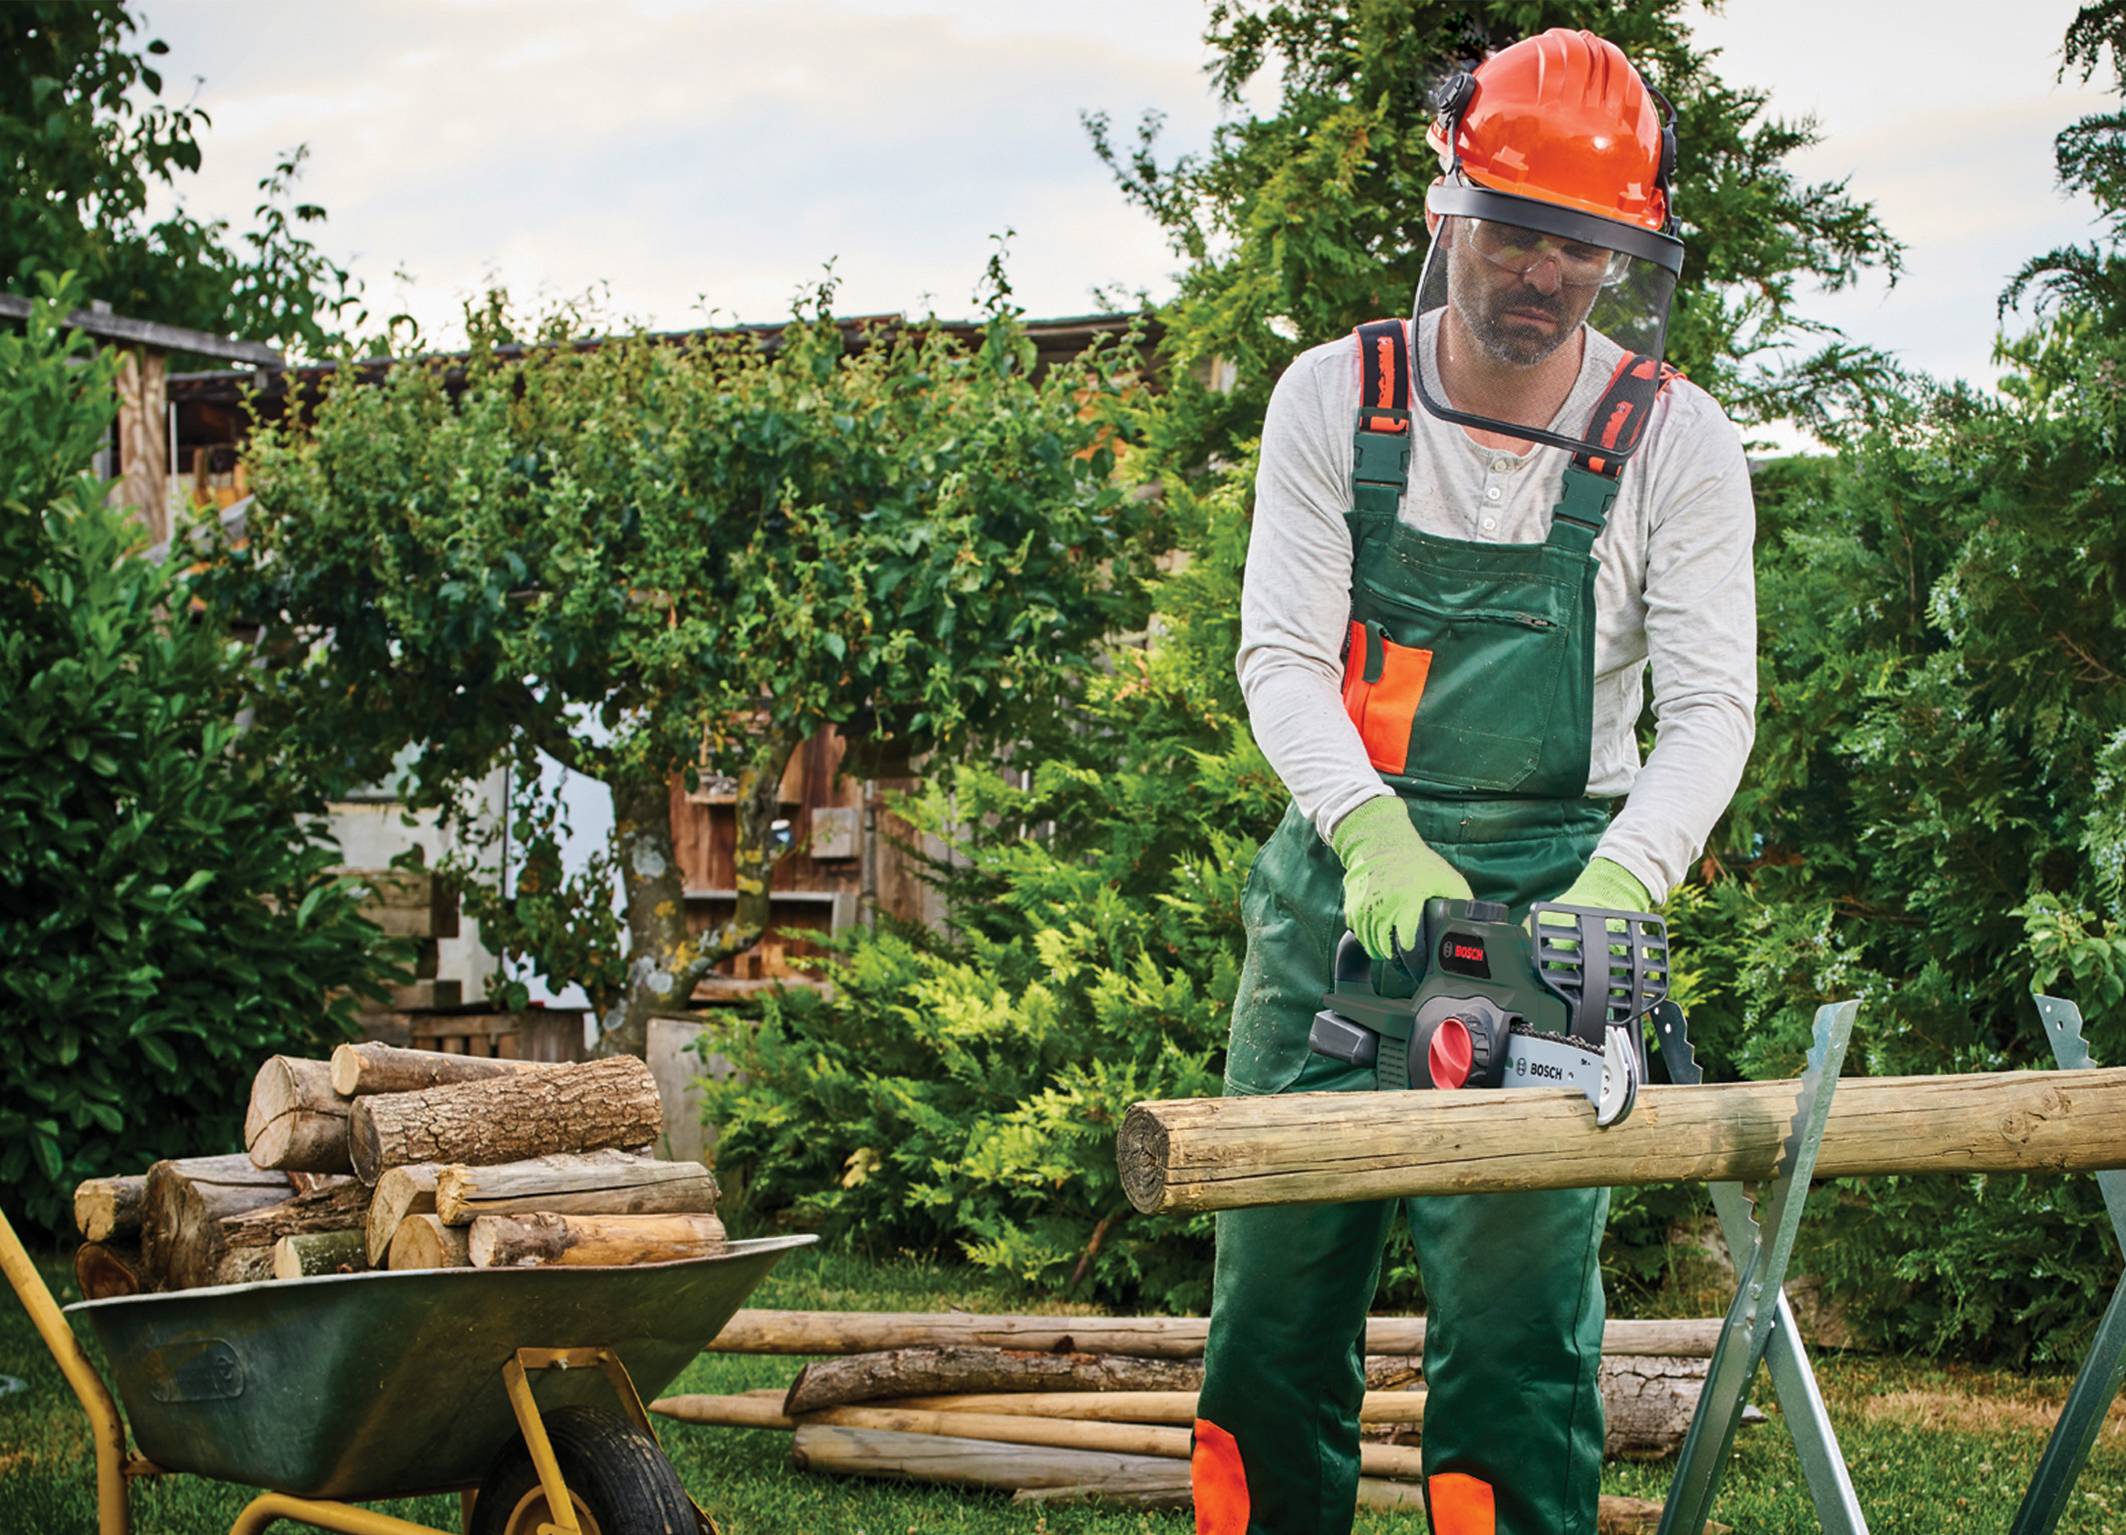 One tool for multiple sawing tasks in the garden: Convenient 18 volt chainsaw from Bosch